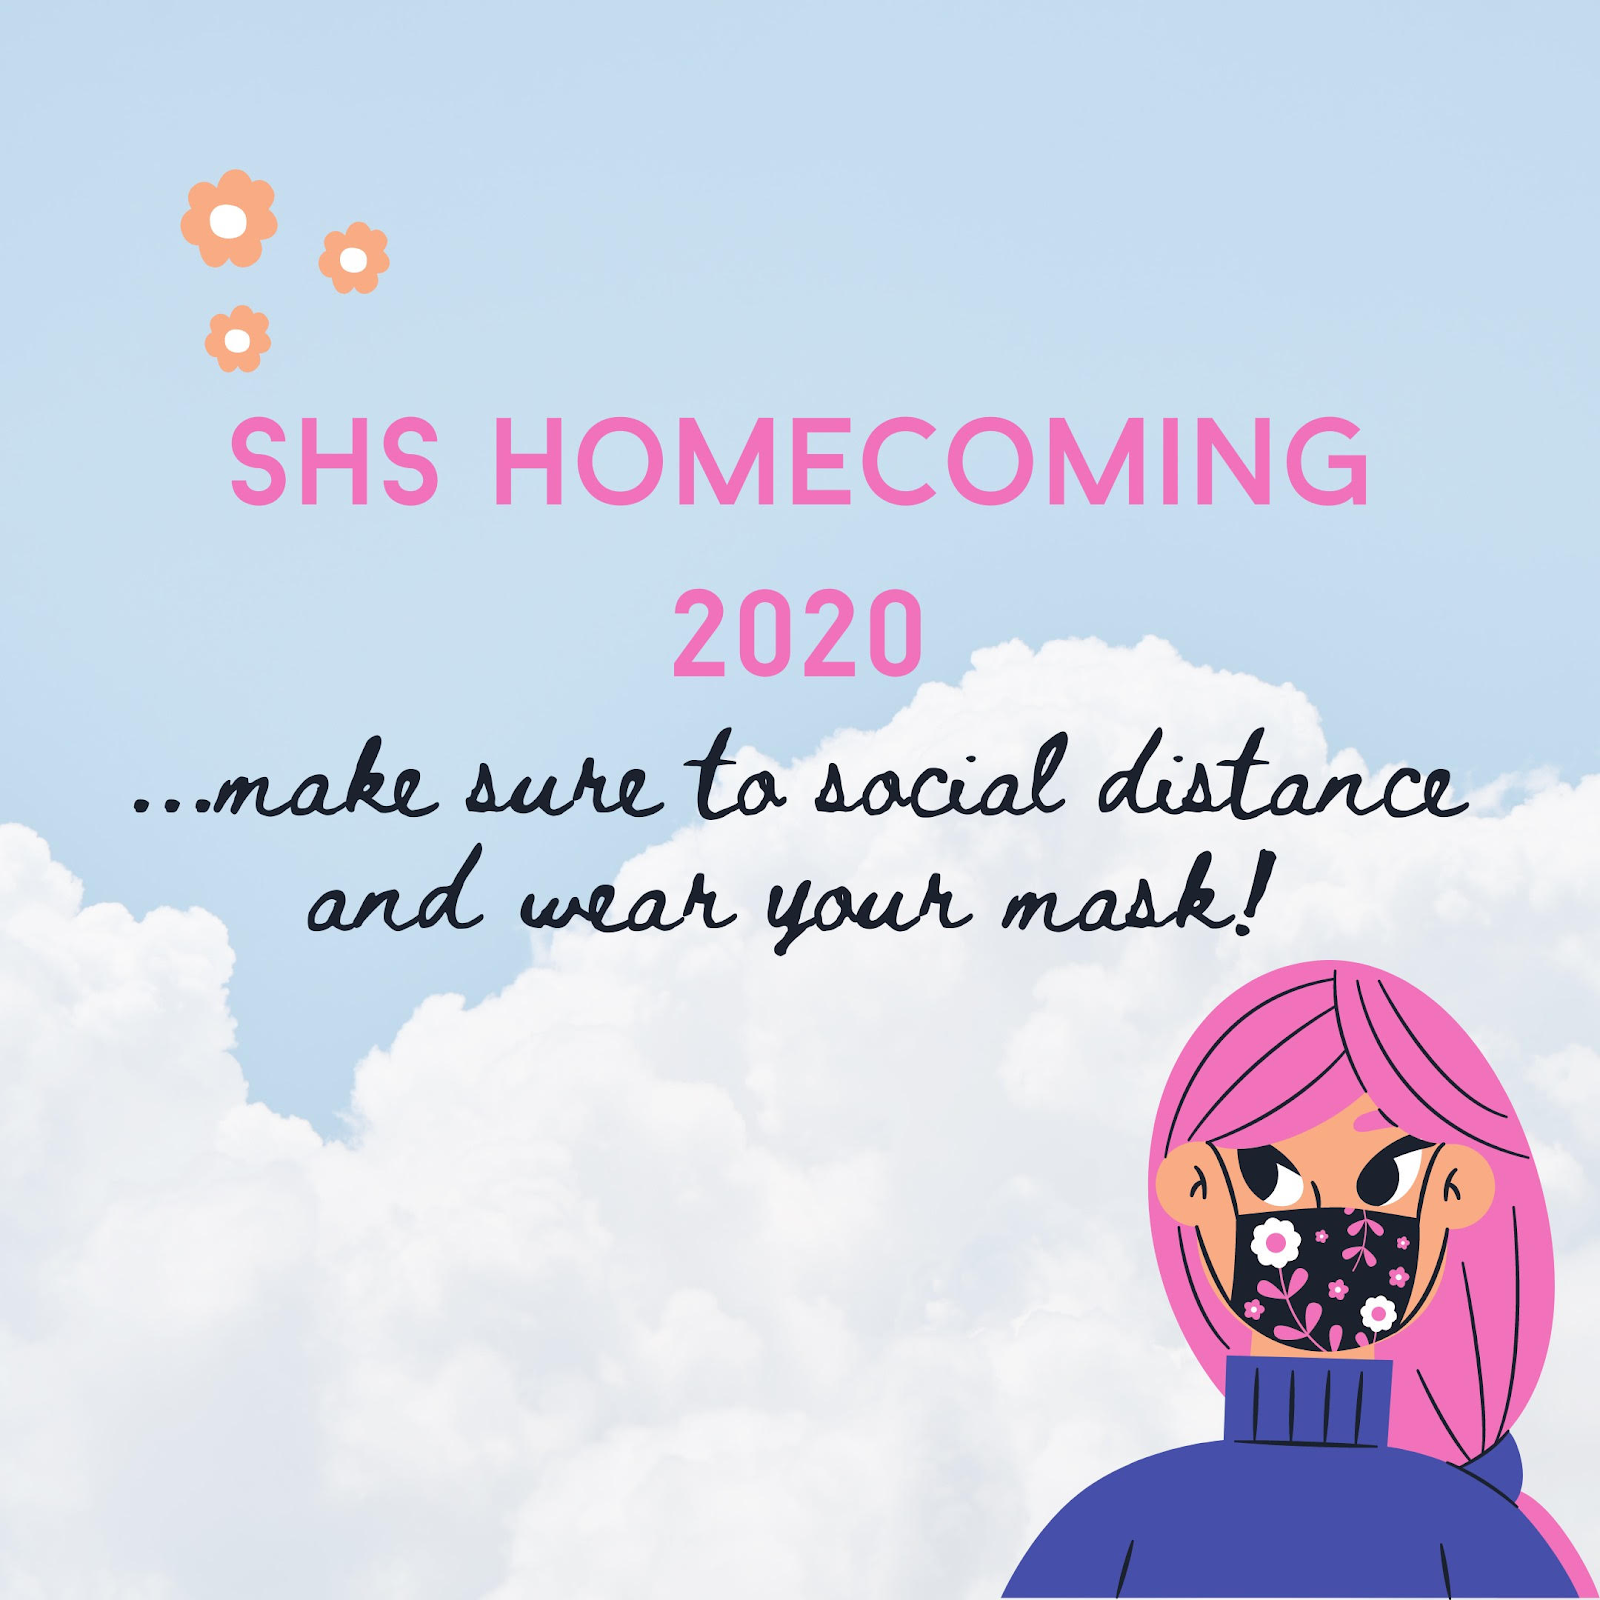 SHS Homecoming 2020